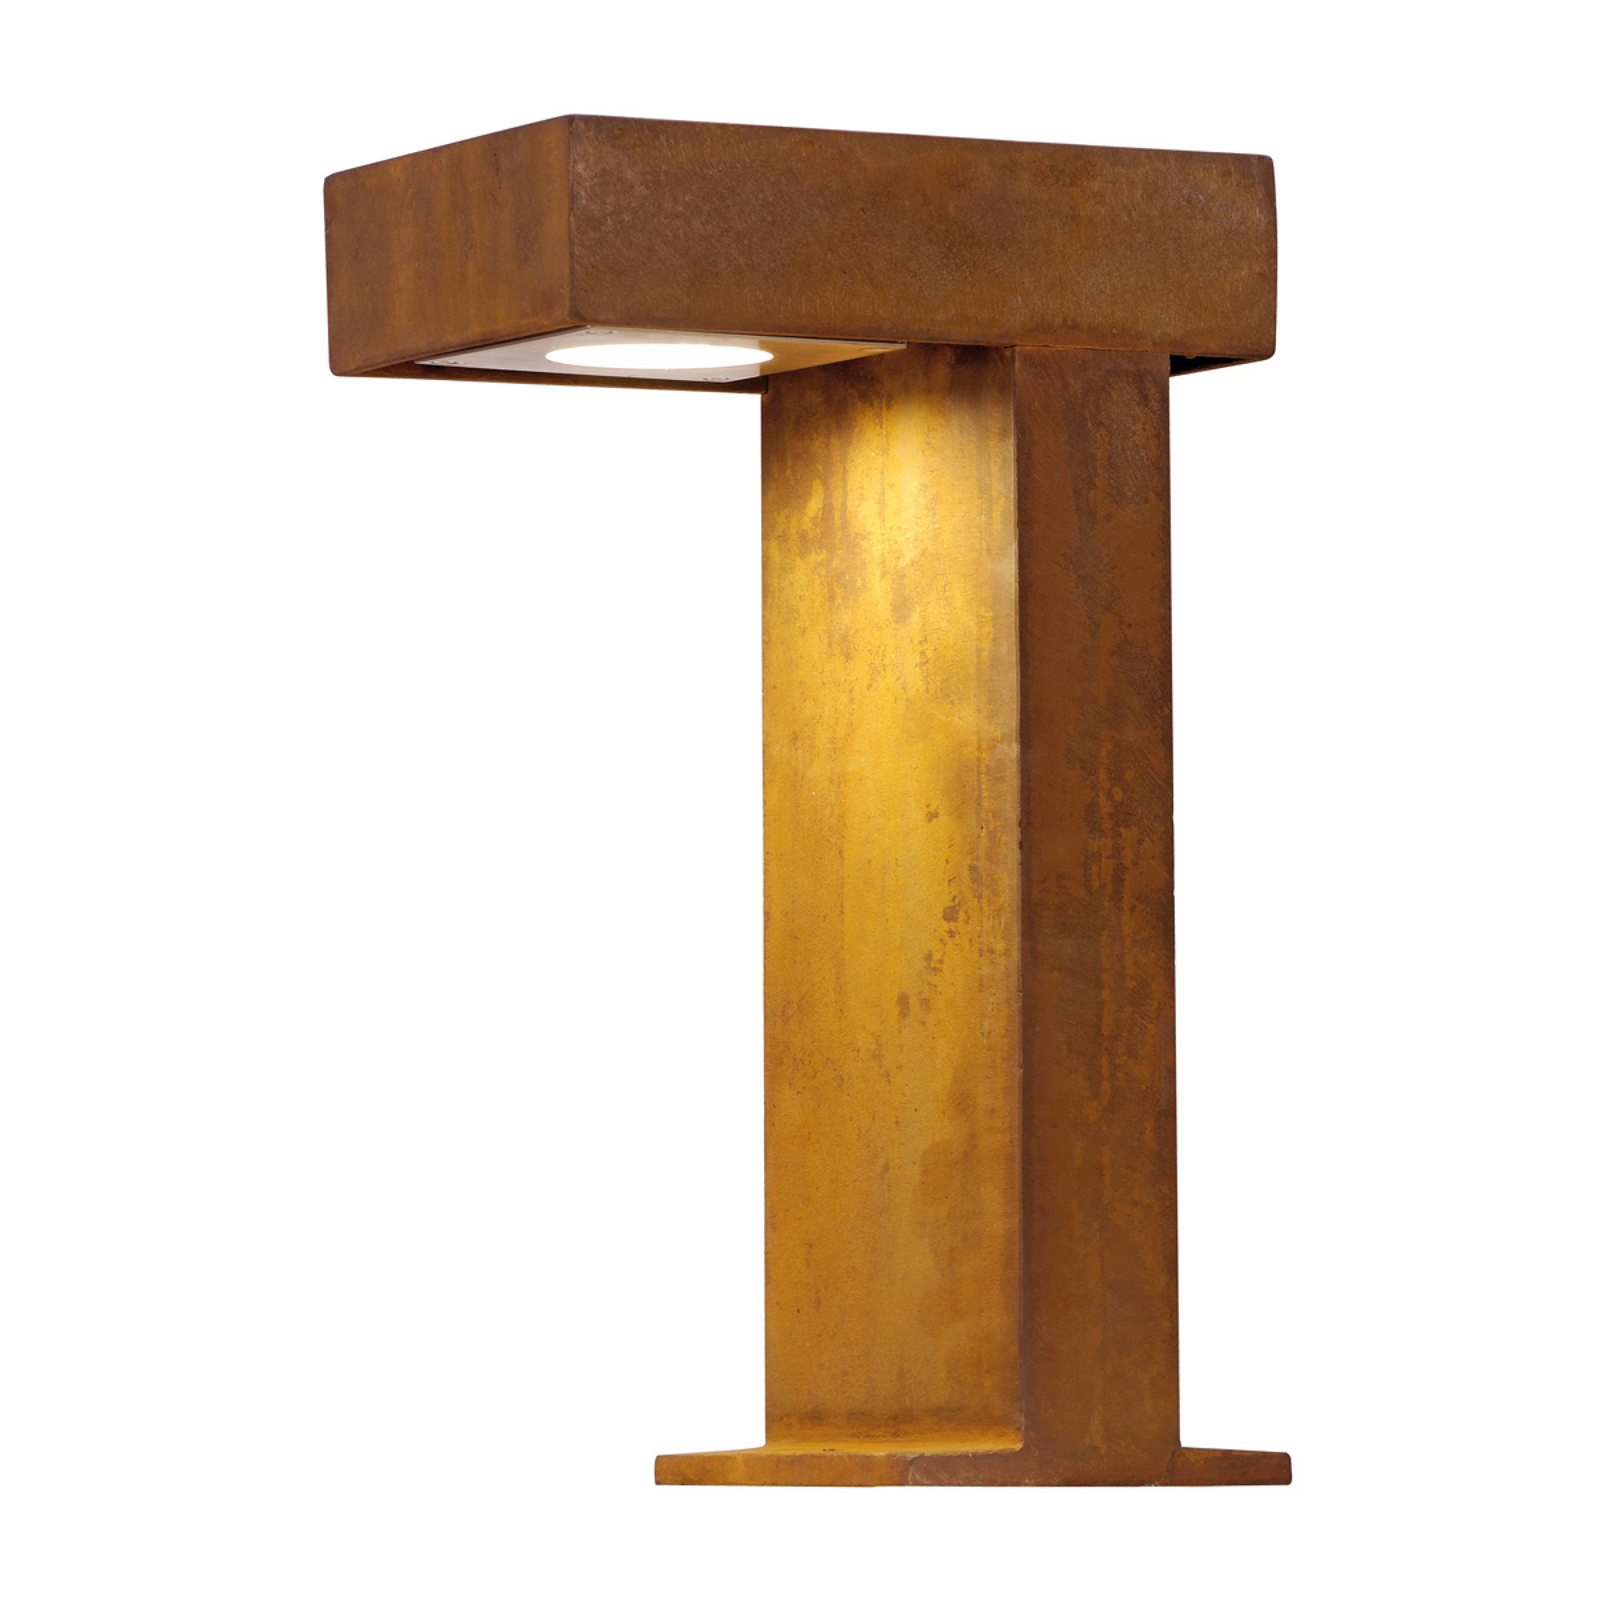 Luminaire pour socle RUSTY PATHLIGHT